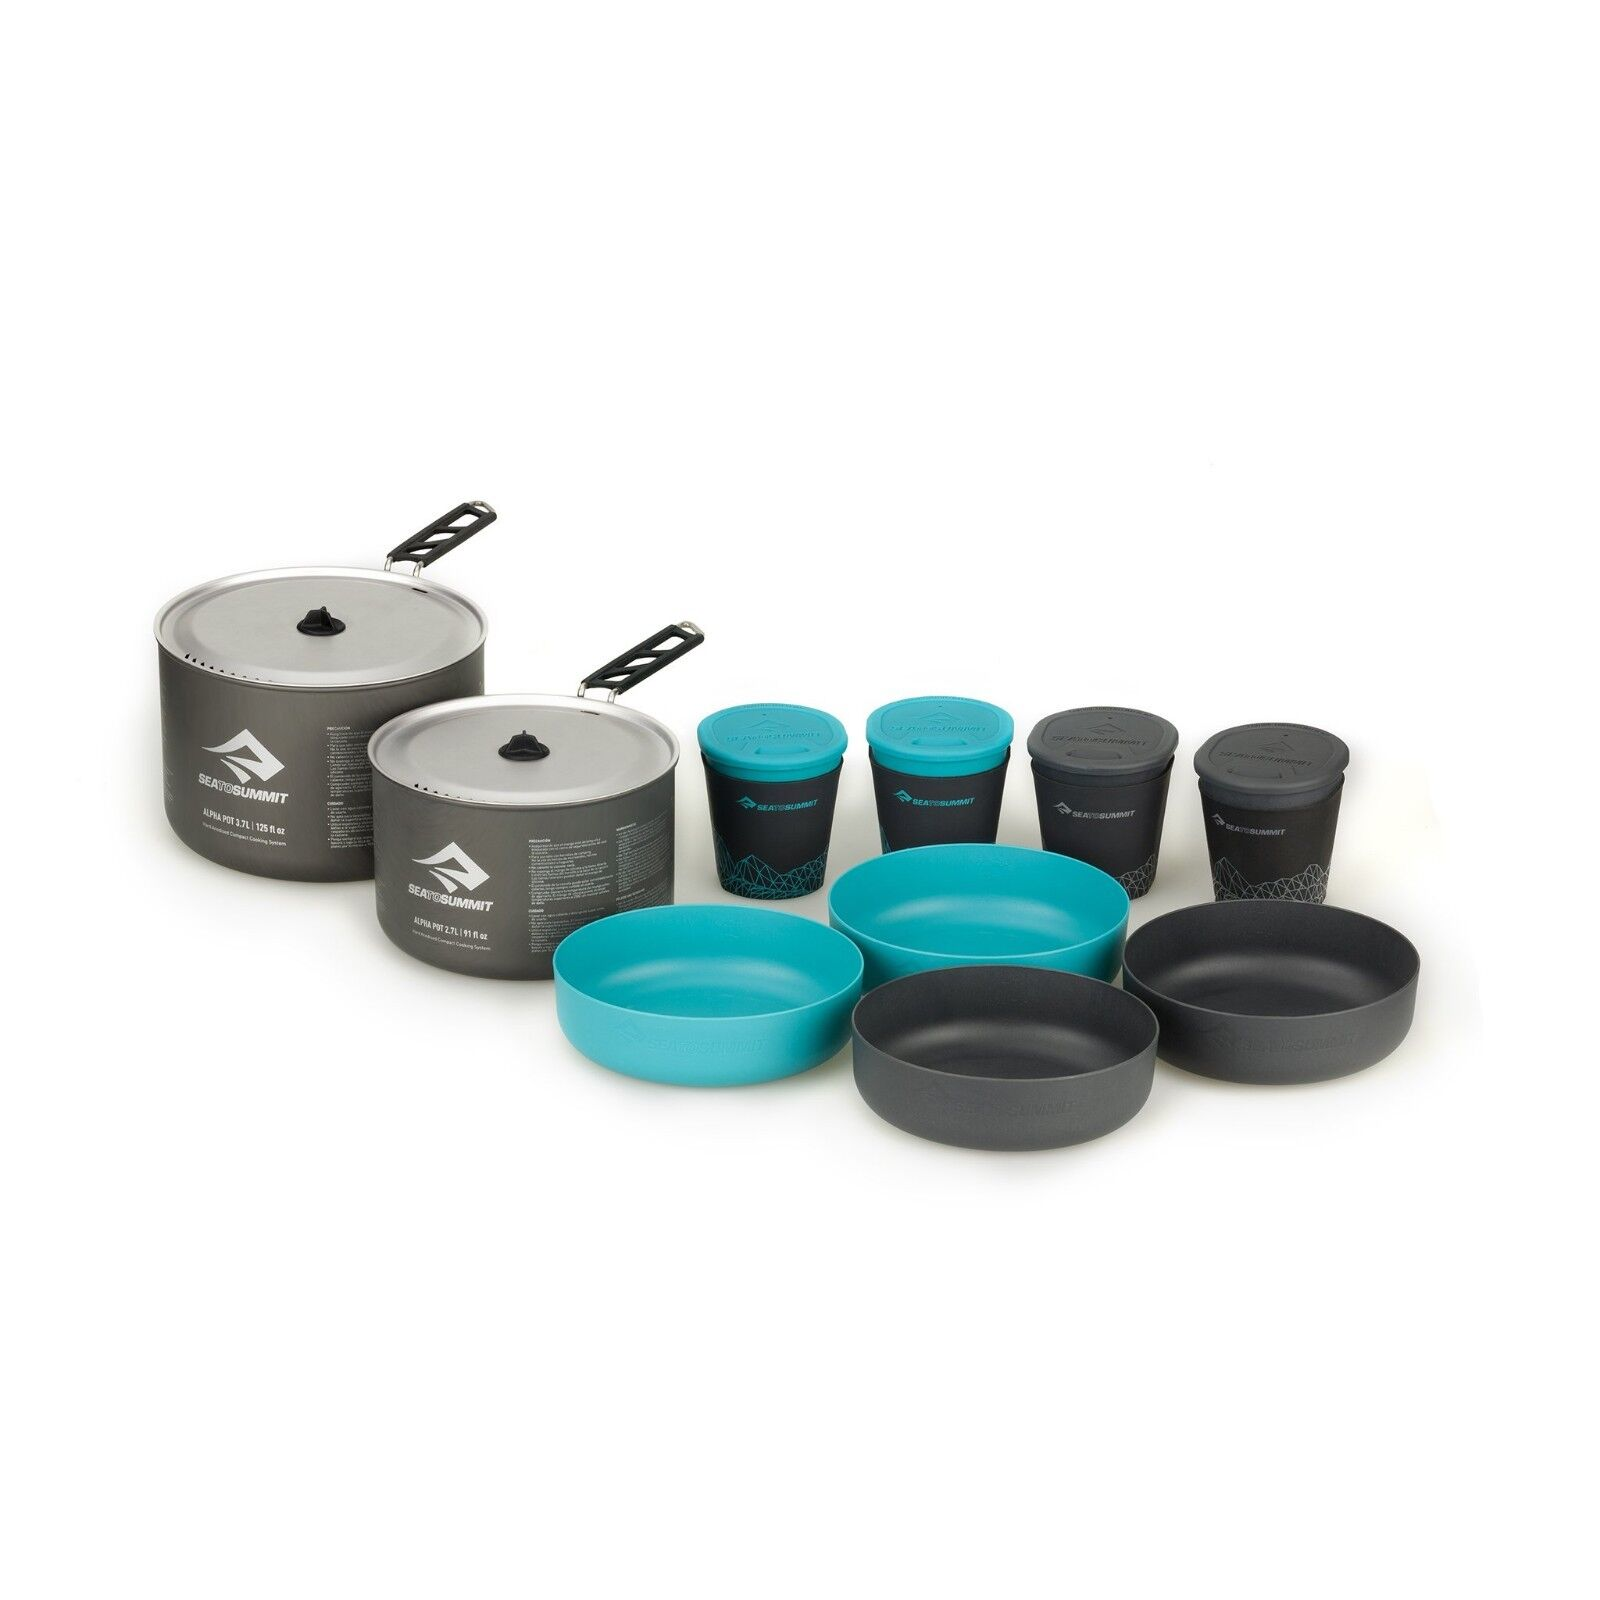 Sea to 4.2 Summit Alpha Pot Set 4.2 to - Camp Kitchen Cookware and Tableware for 4 peop 8c7f6b